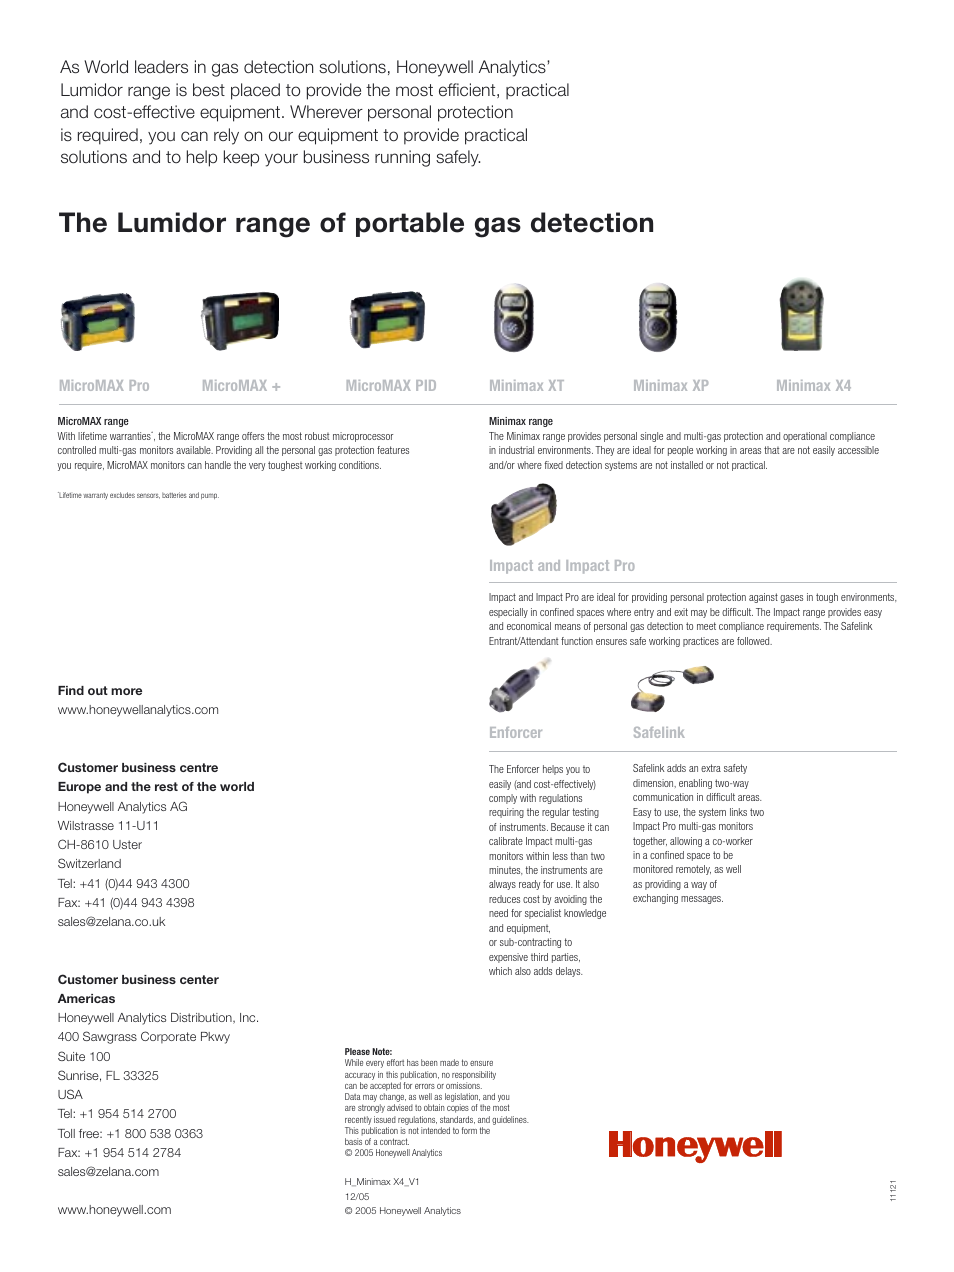 The lumidor range of portable gas detection | Notifier Lumidor ...